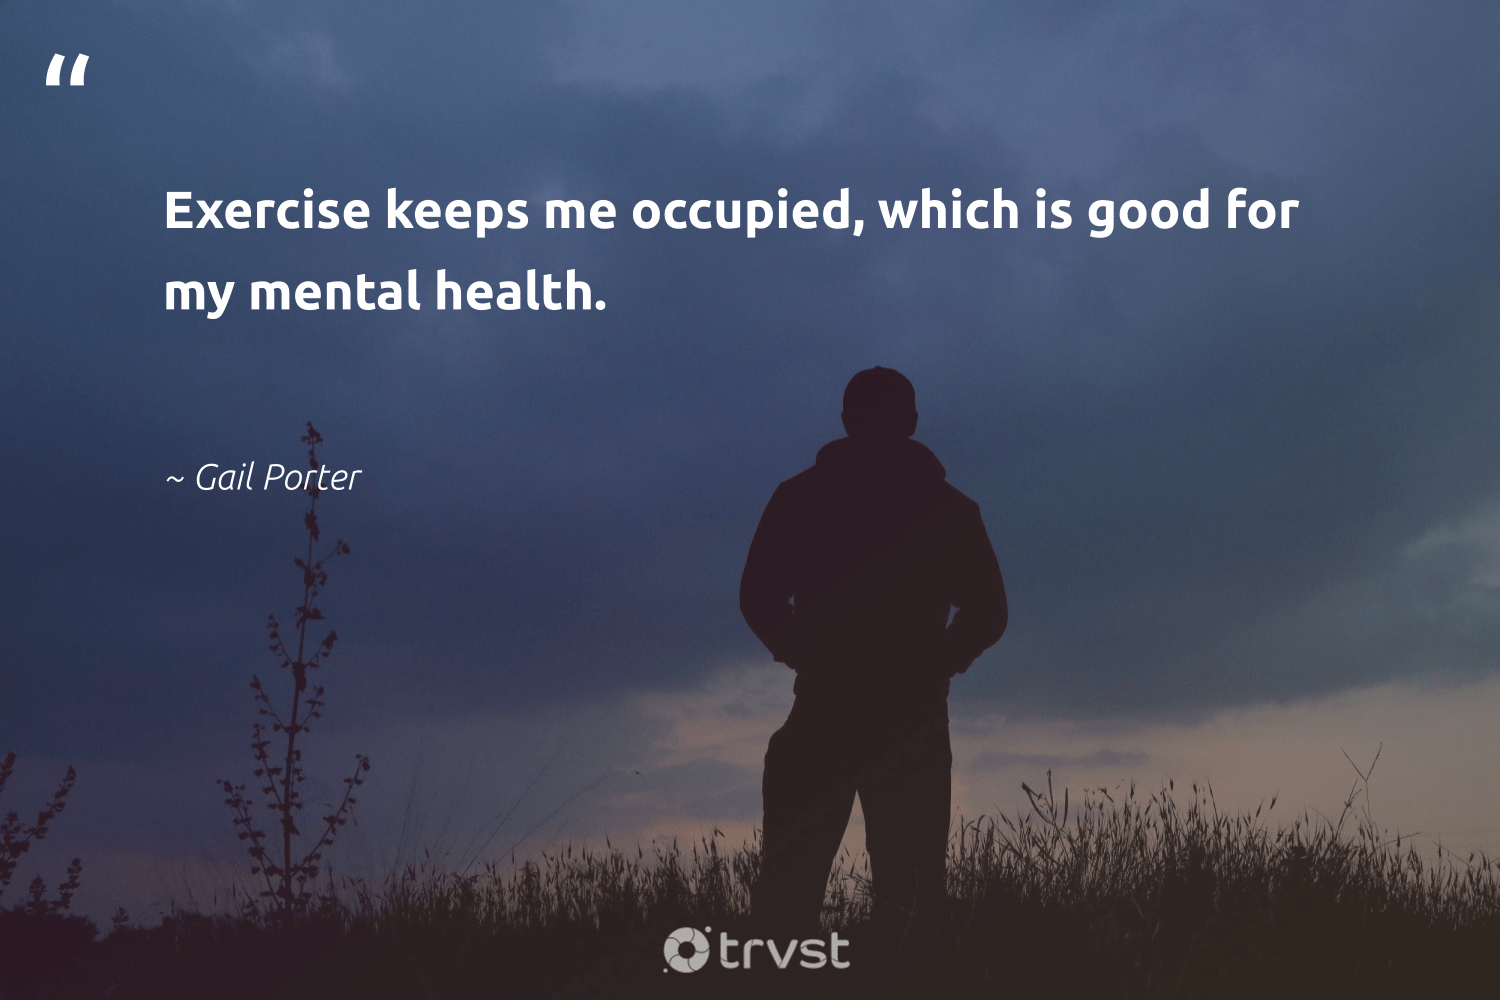 """Exercise keeps me occupied, which is good for my mental health.""  - Gail Porter #trvst #quotes #mentalhealth #health #exercise #depression #togetherwecan #changemakers #changetheworld #anxiety #begreat #nevergiveup"